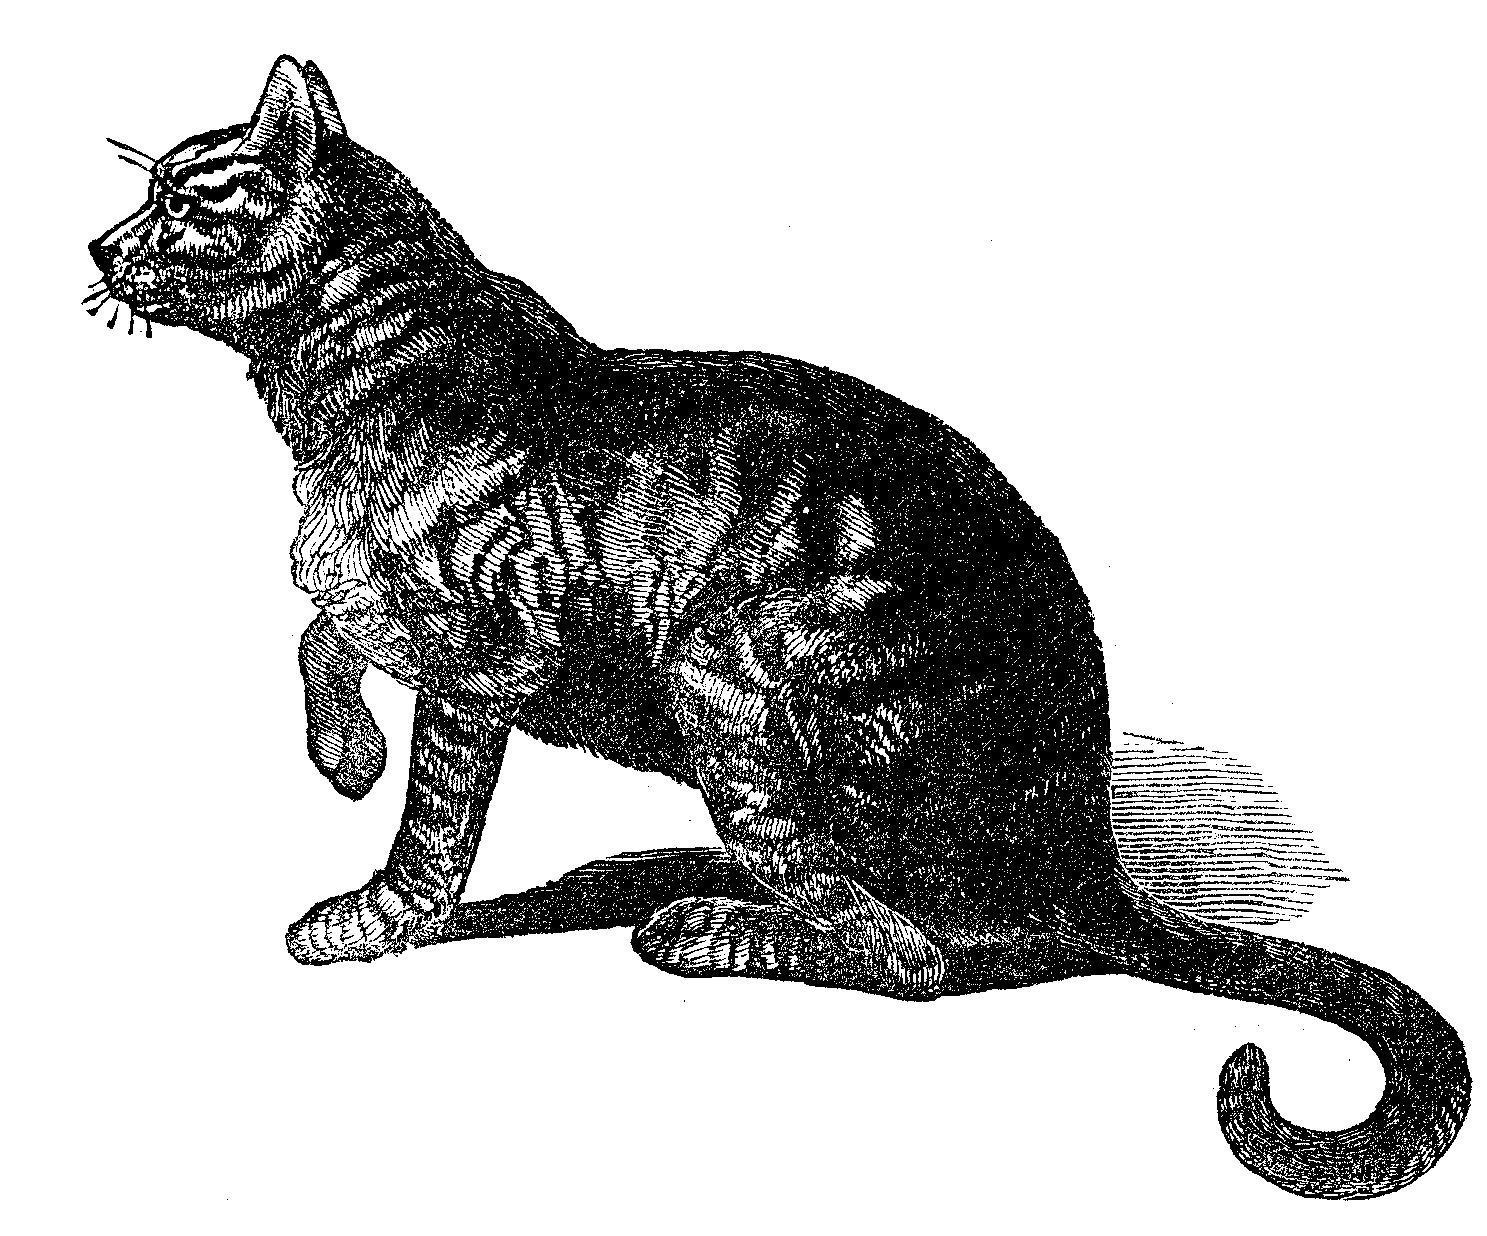 Antique cat illustration from an old Natural History book.